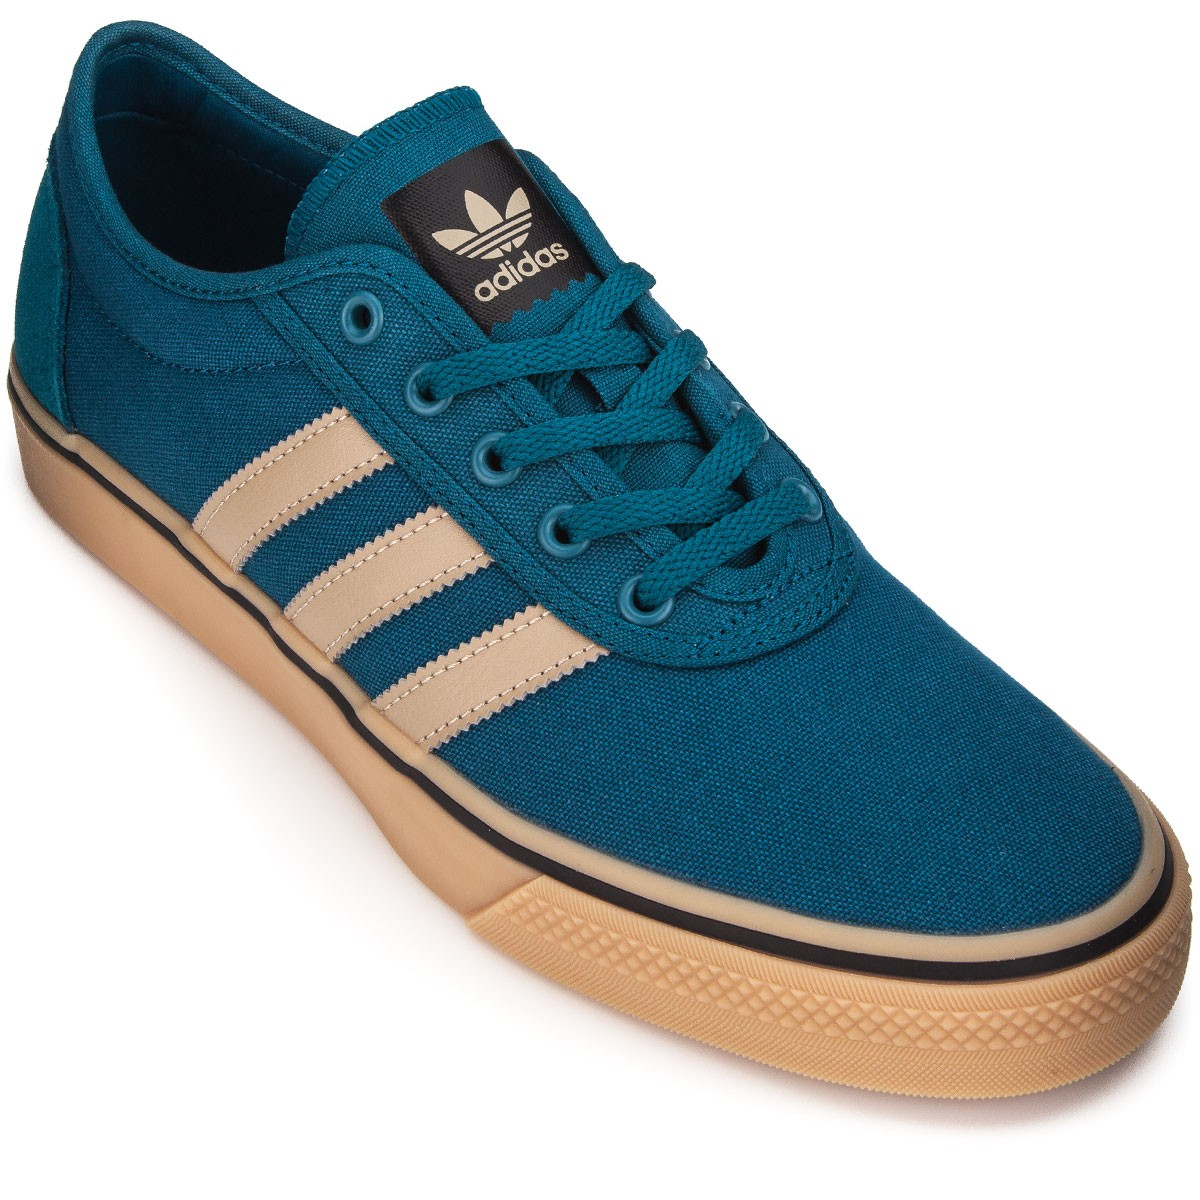 the latest 14d54 d0d57 adi ease blue adidas adi ease shoes surf ...